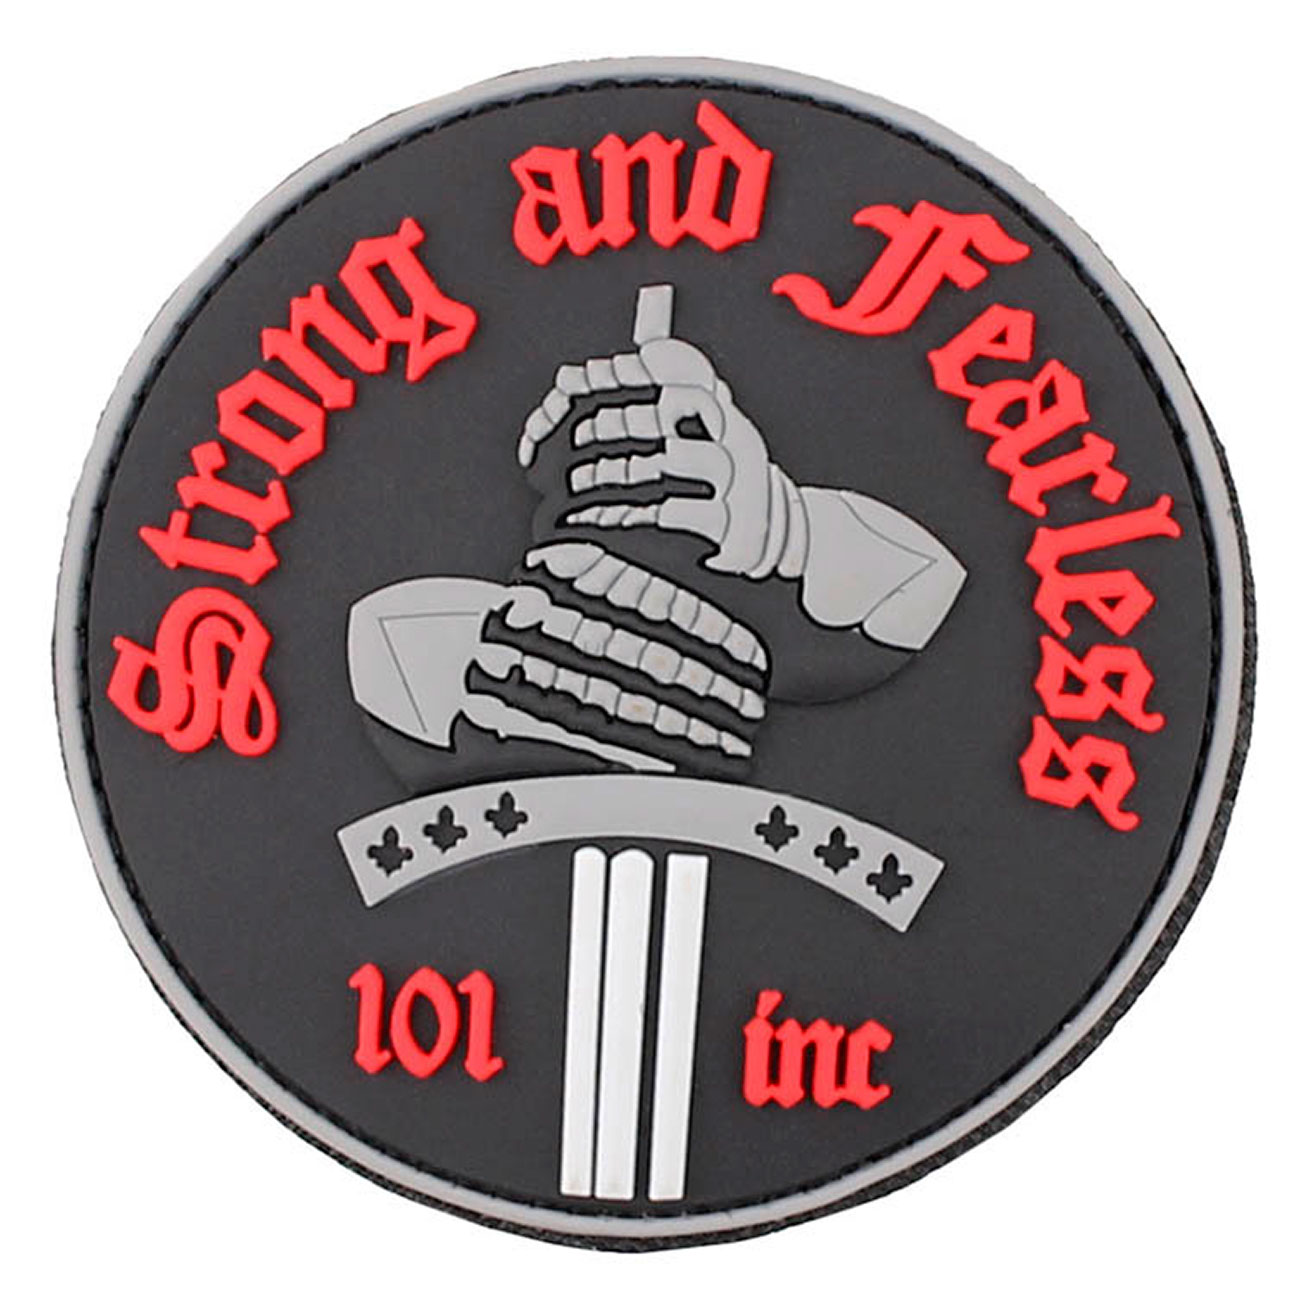 3D Rubber Patch Strong and Fearless rot 0